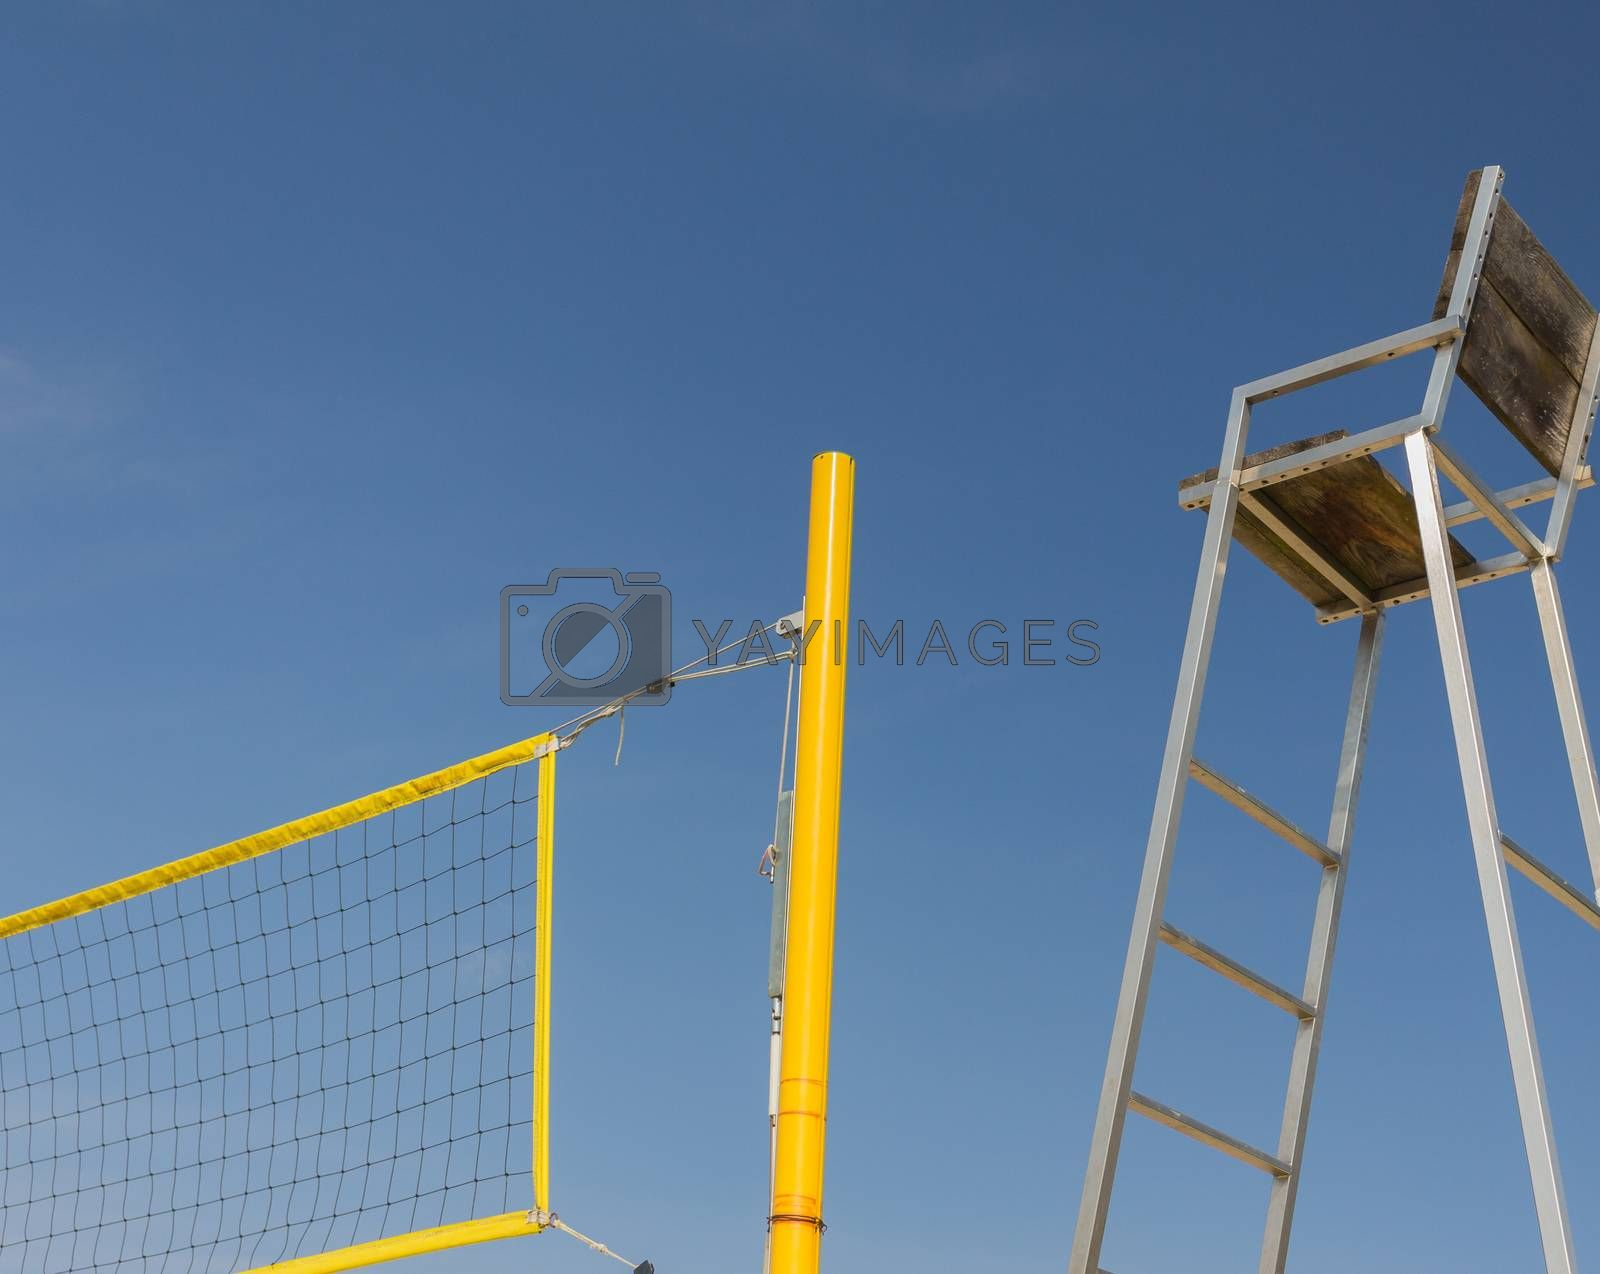 The seat of arbitration at a Volleyball playground